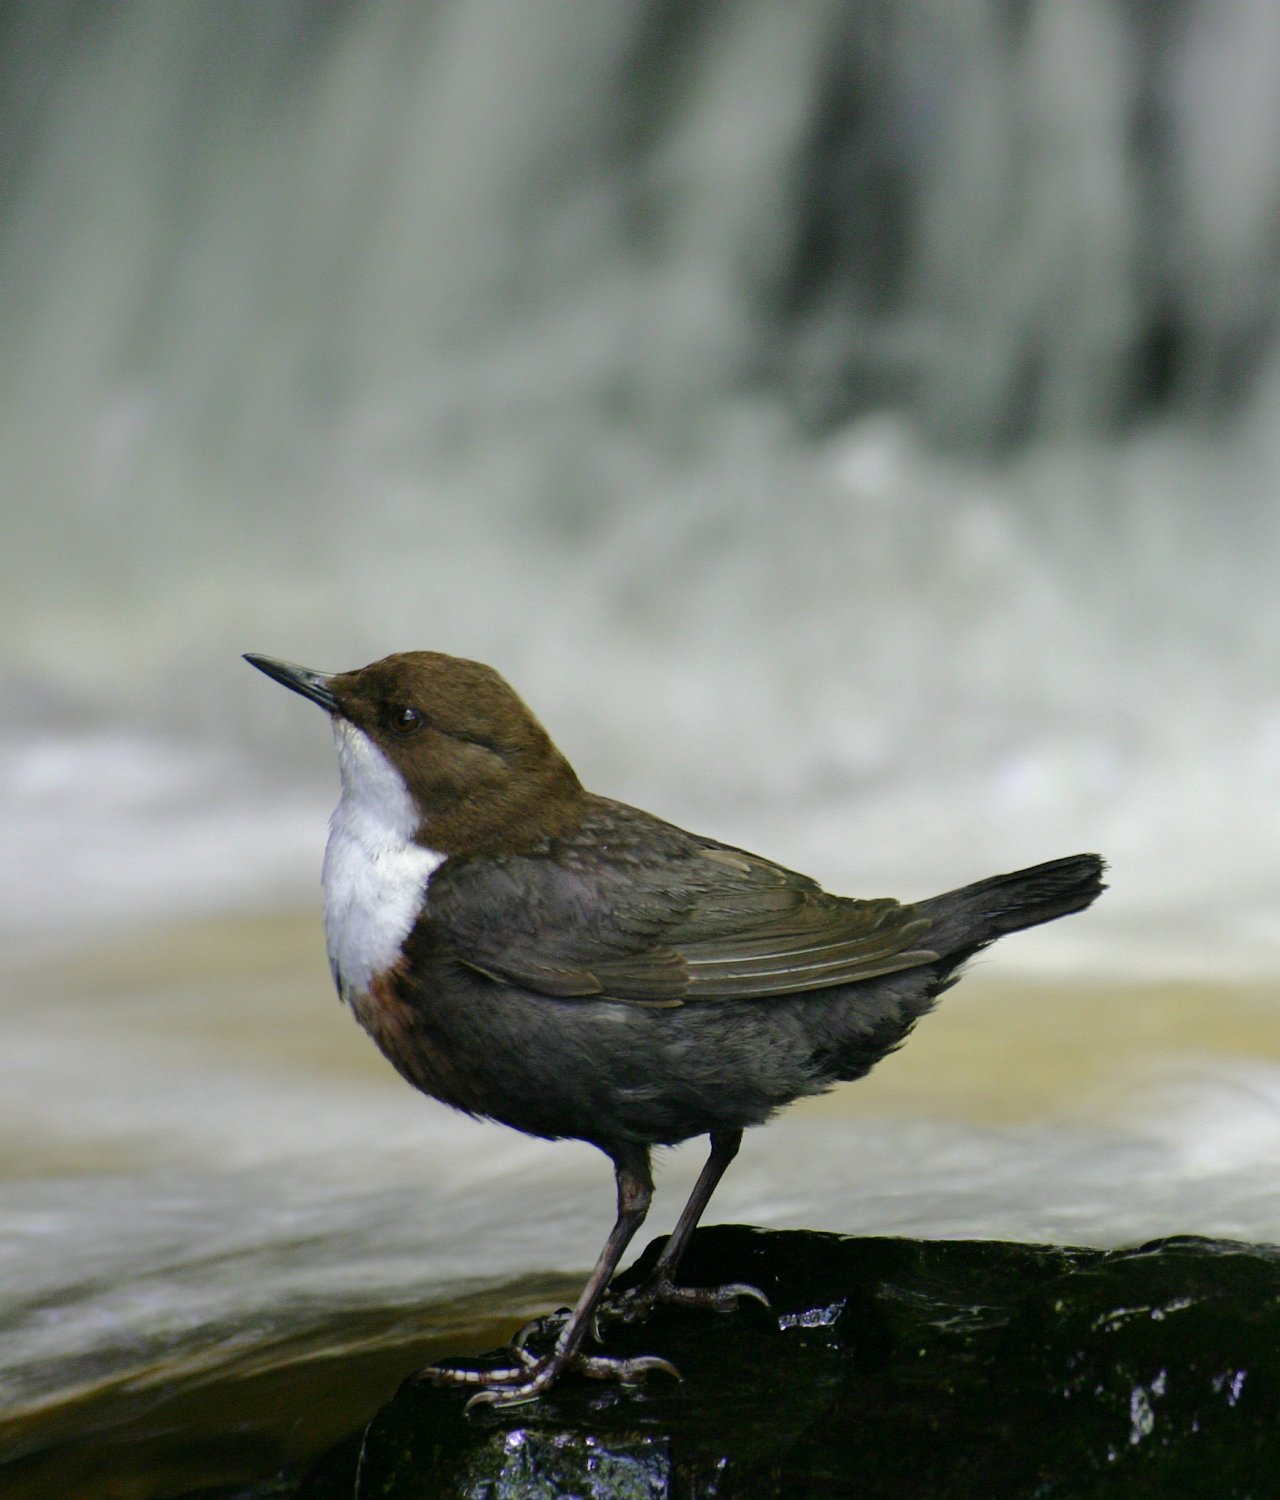 "Skorec u vodopádu, ""Zdroj a licence""((Eurasian White-fronted Dipper, C cinclus, Autor: Andrew2606, Dostupné z:https://commons.wikimedia.org/wiki/File:Eurasian_White-fronted_Dipper,_C_cinclus.JPG [cit. 2016–01–22], CC BY 3 Unported https://creativecommons.org/licenses/by/3.0/deed.cs))"